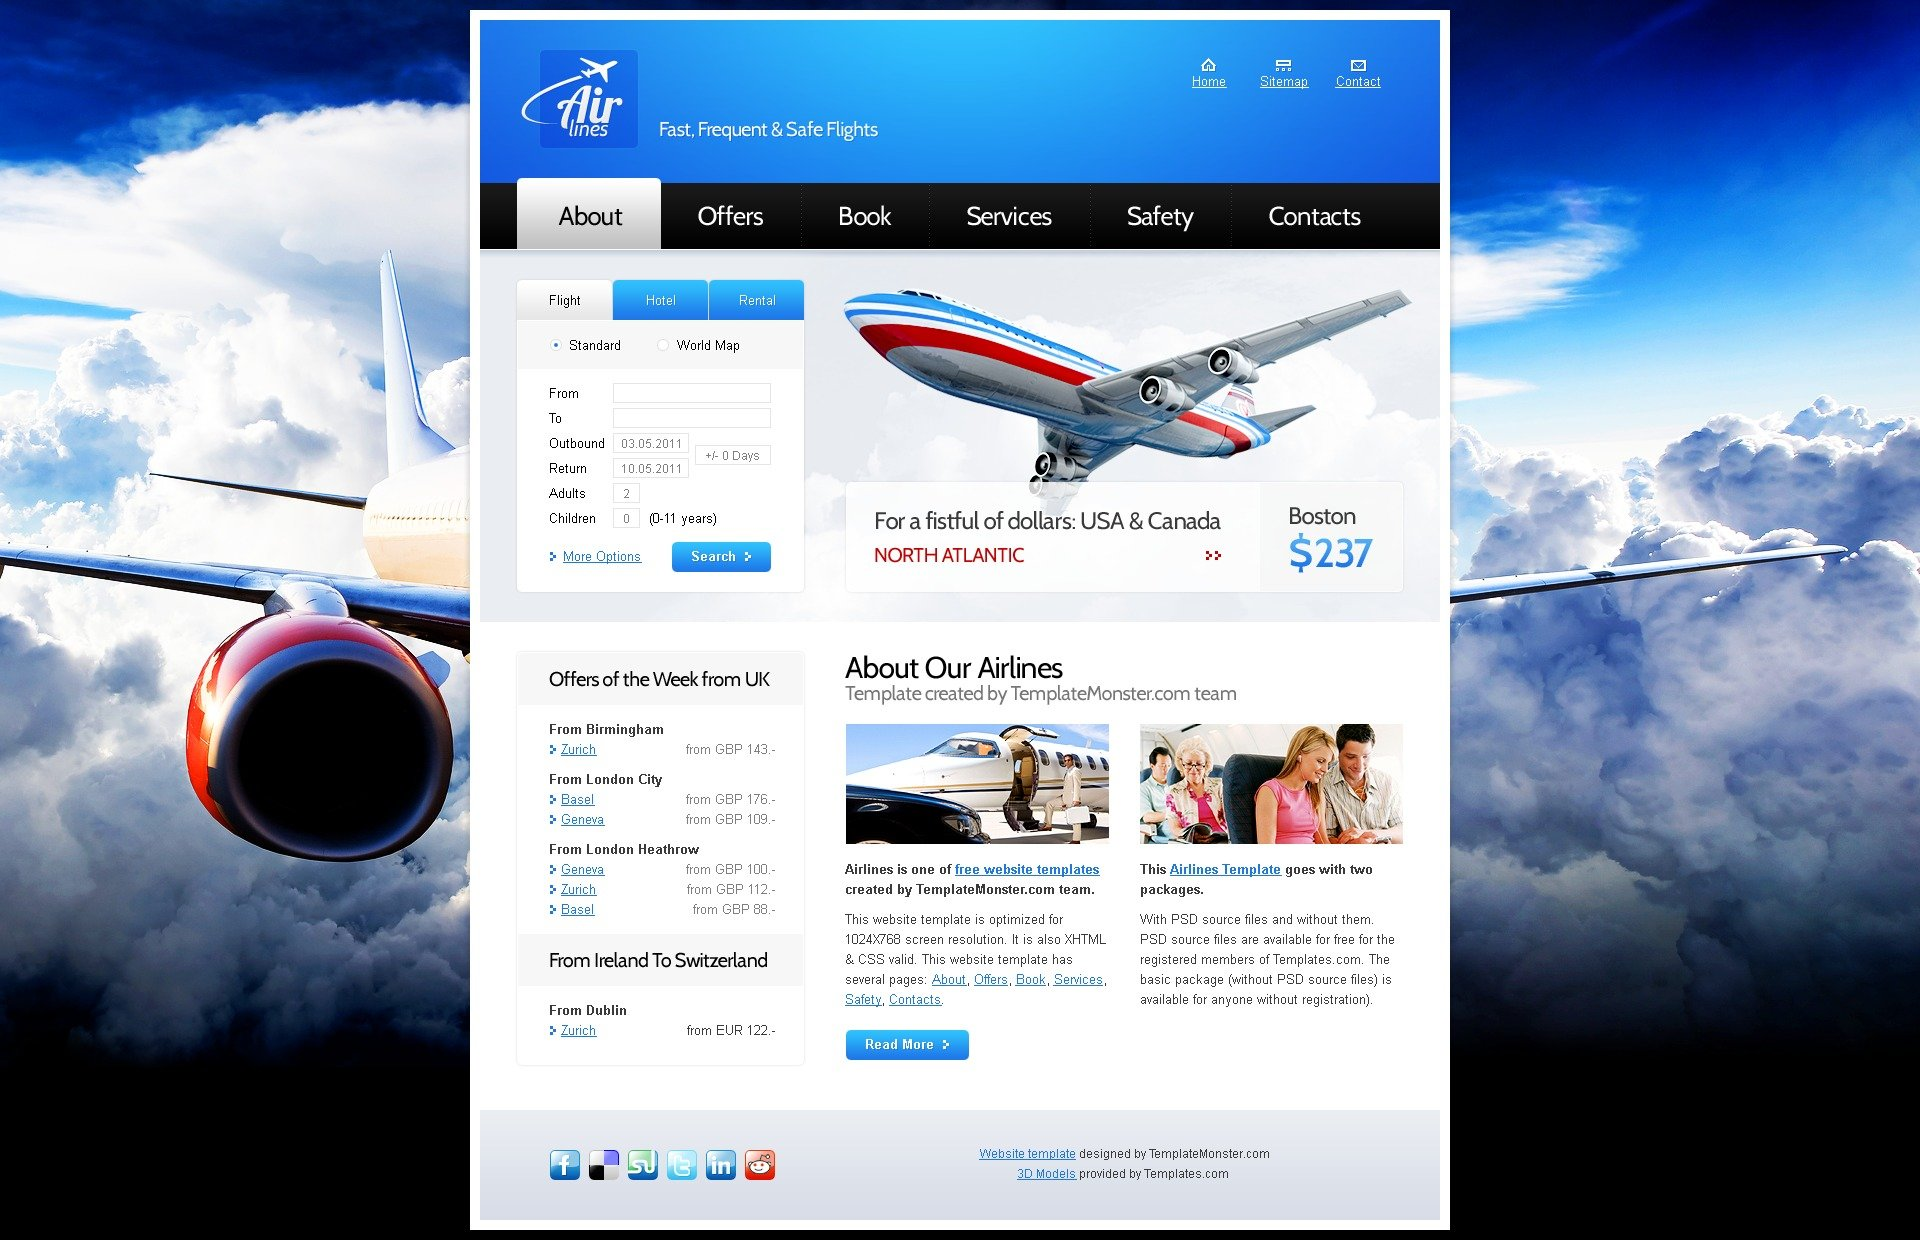 website template for airlines company zoom in